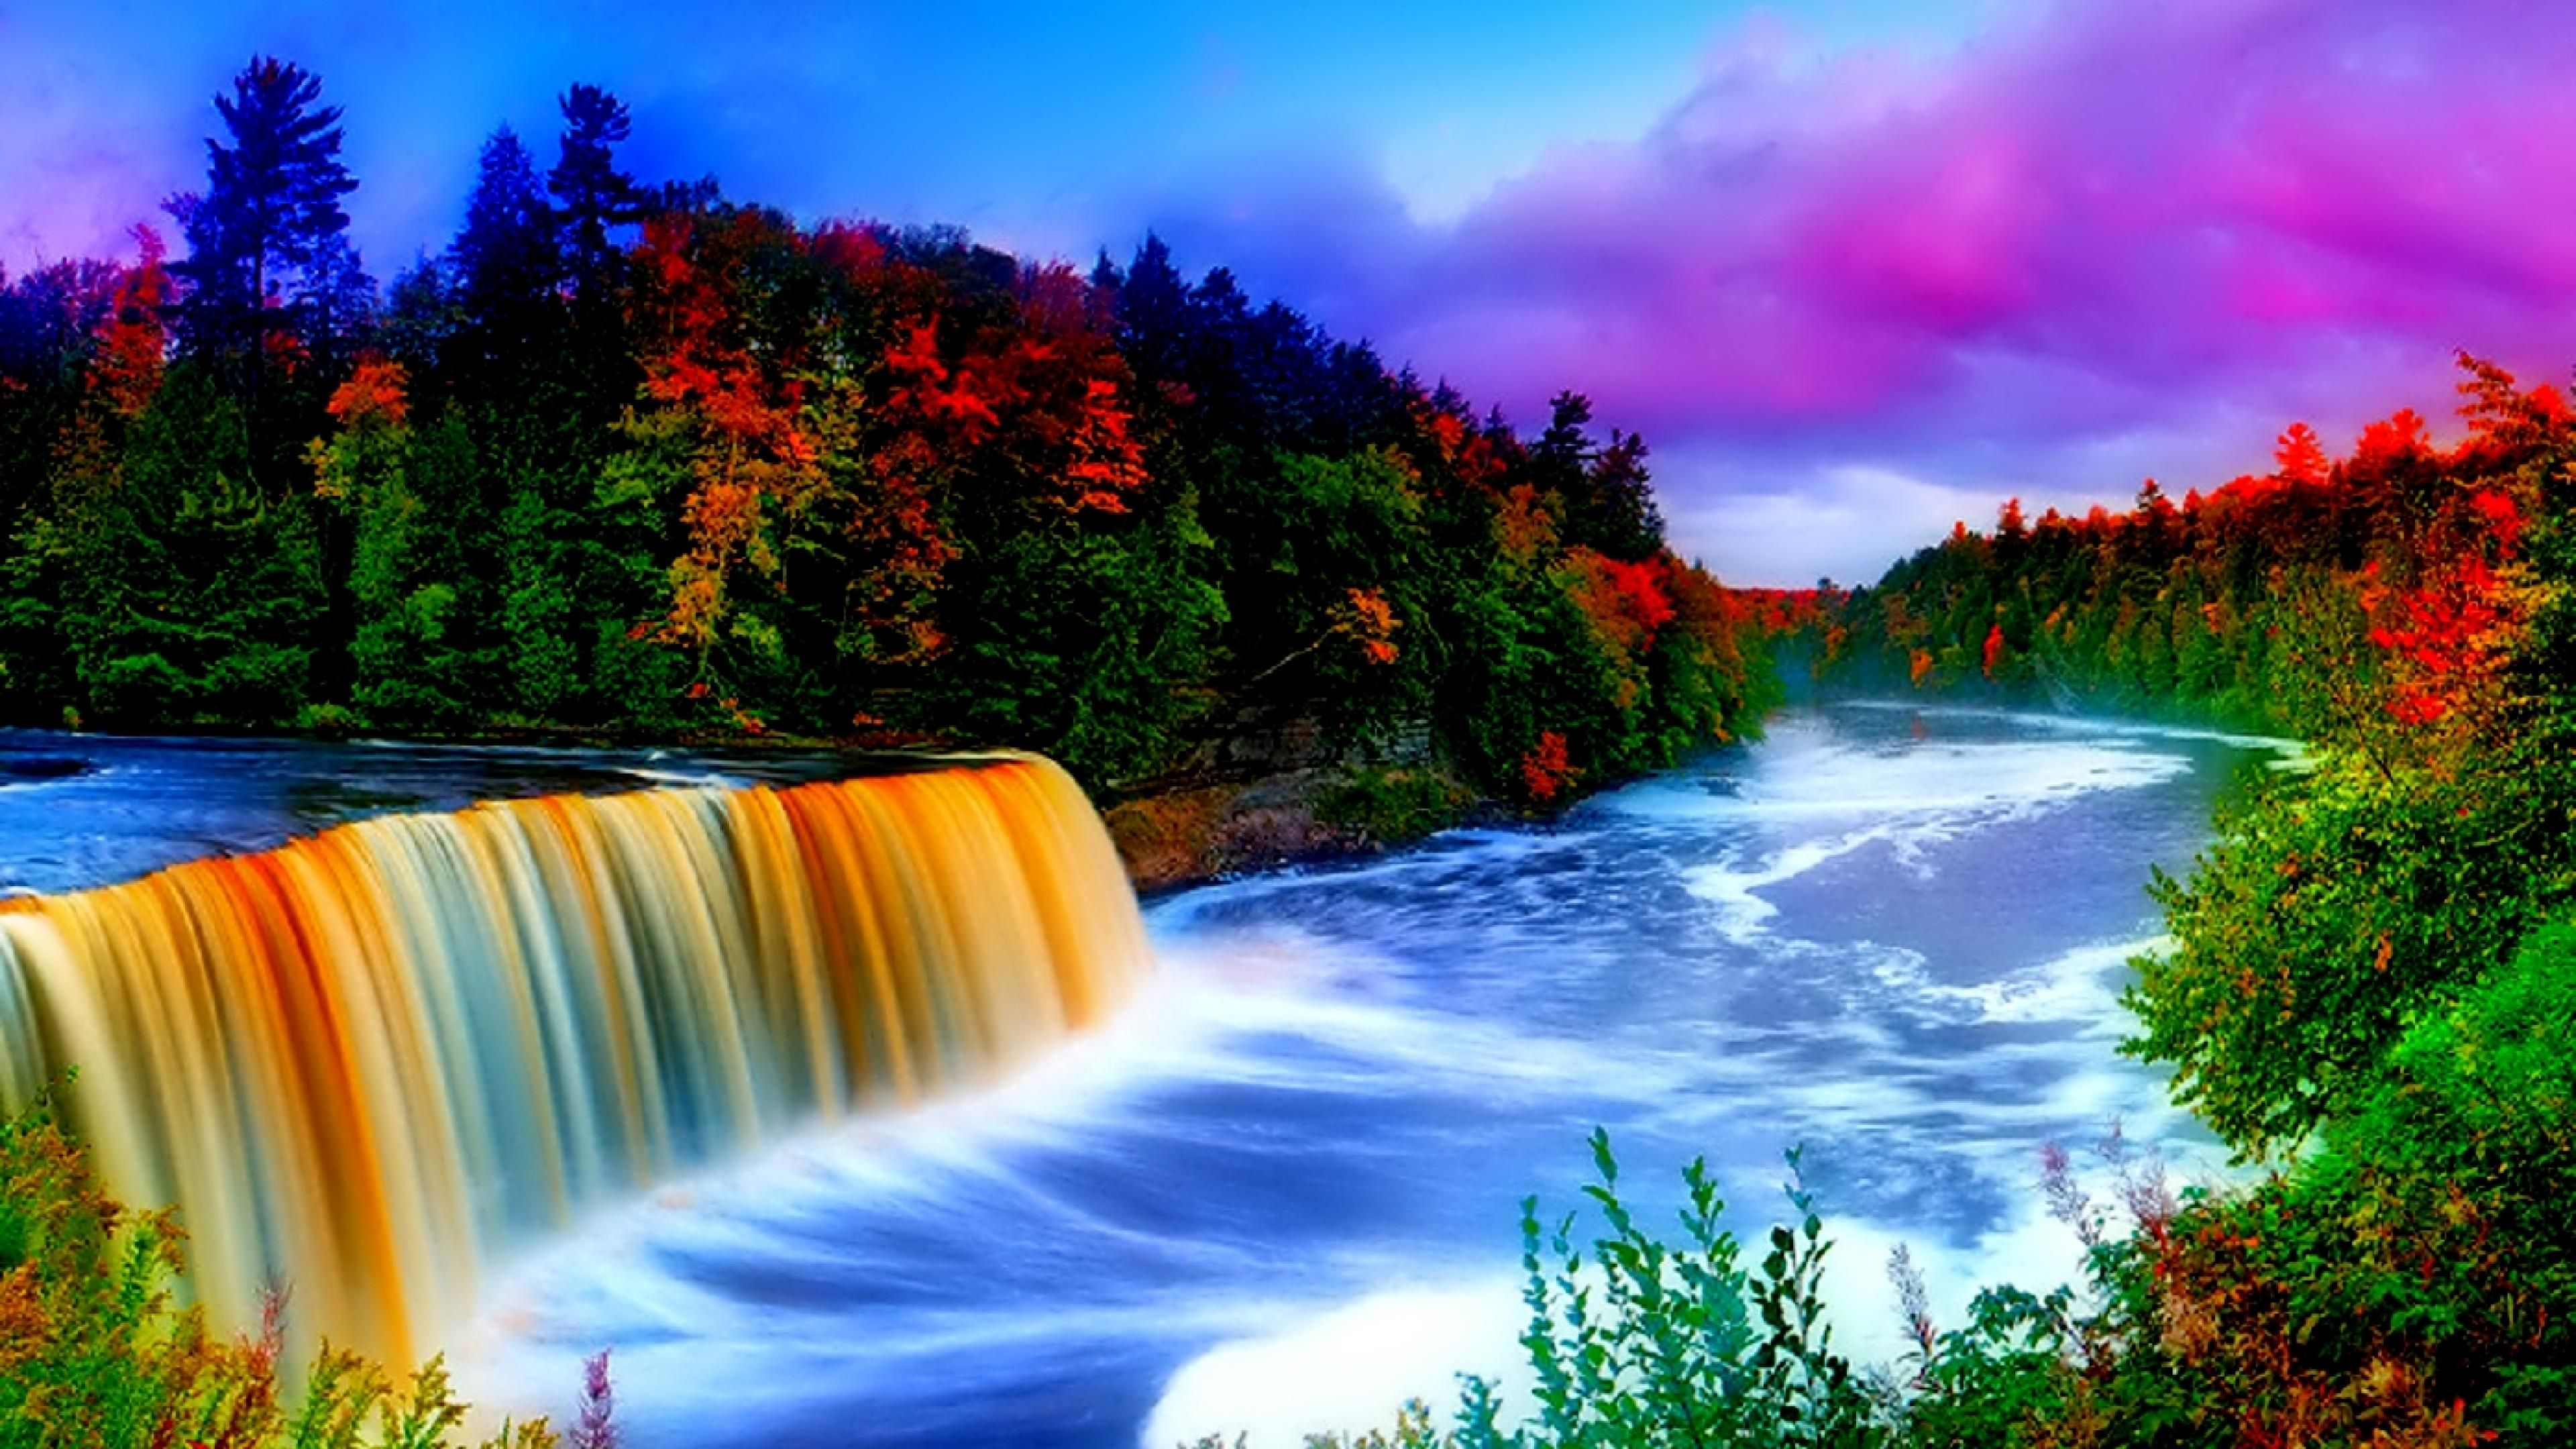 click here to download in hd format >> nature waterfall hd